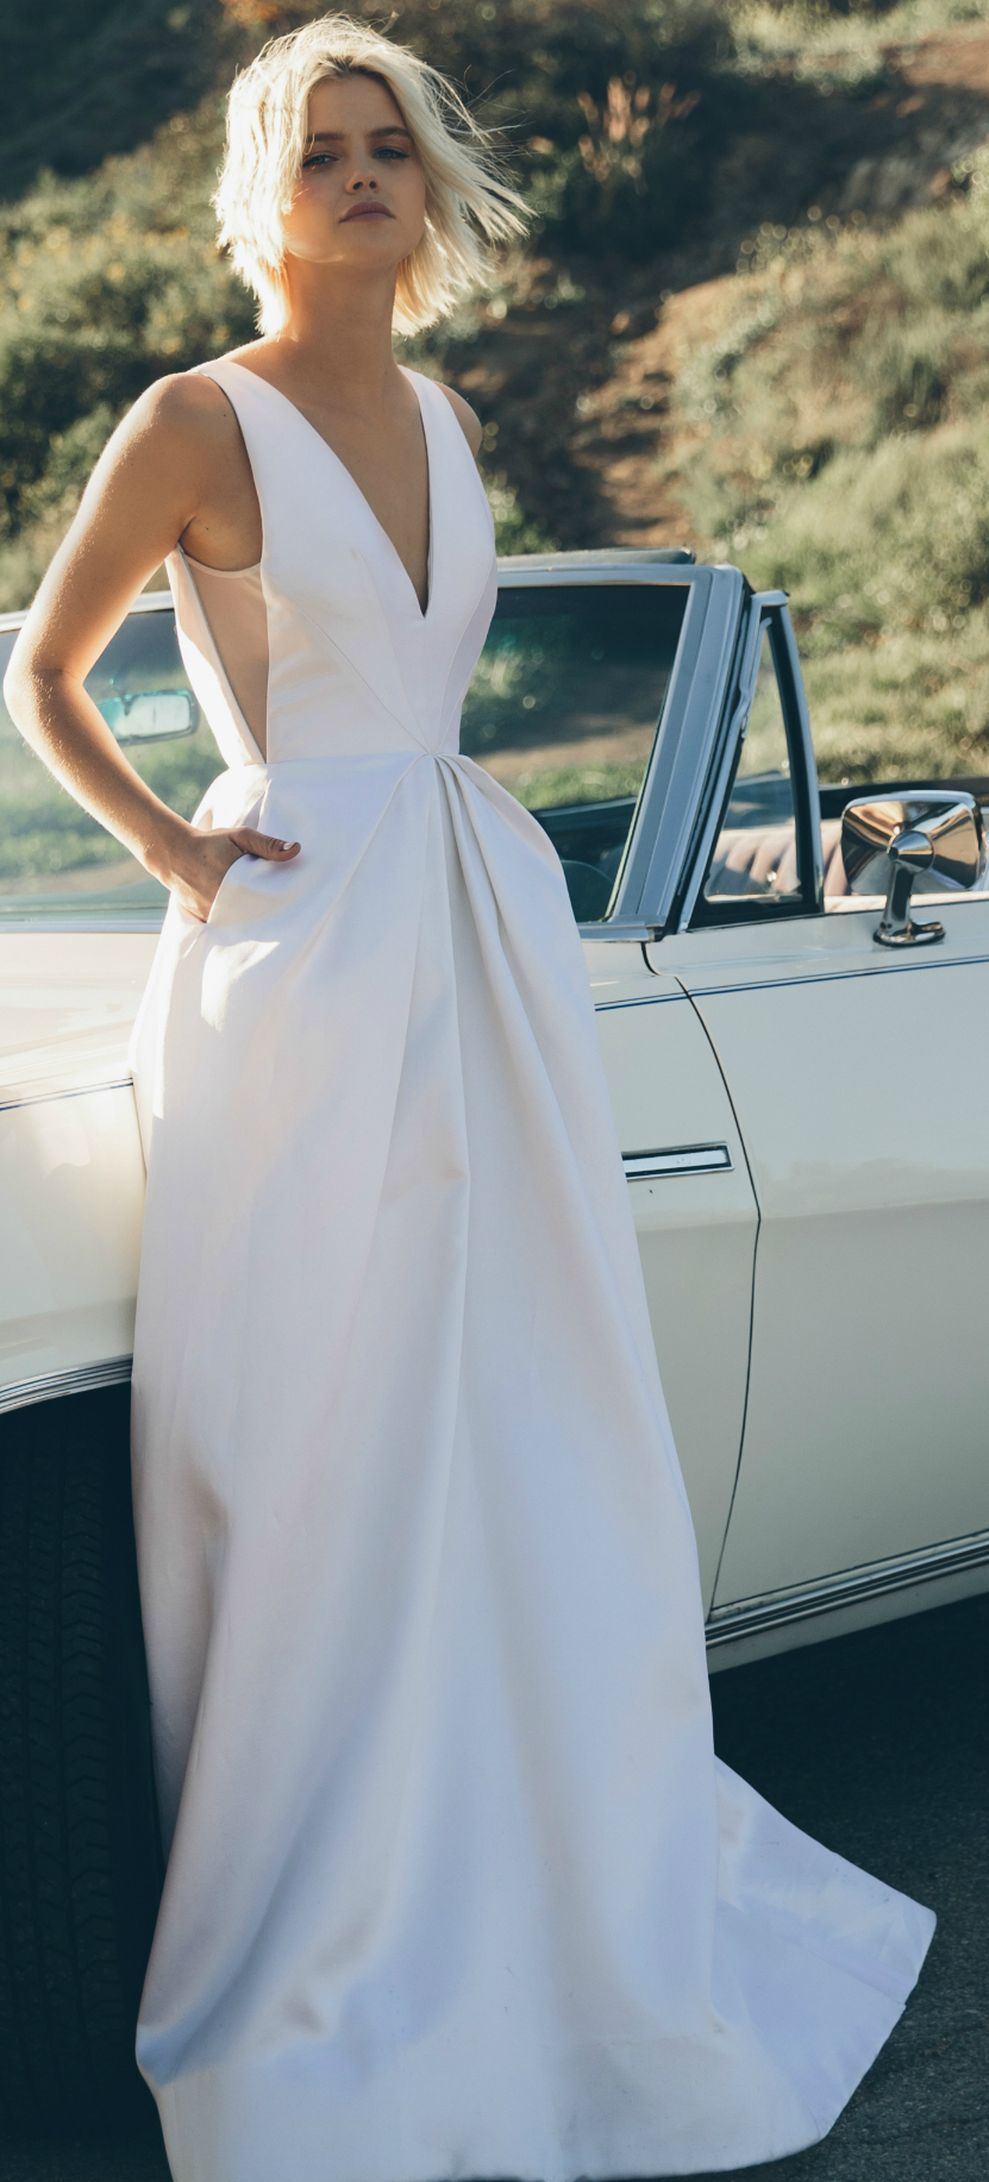 cool 109 Amazing Silk Wedding Gowns Ideas to Makes You Mo… | Dress ...